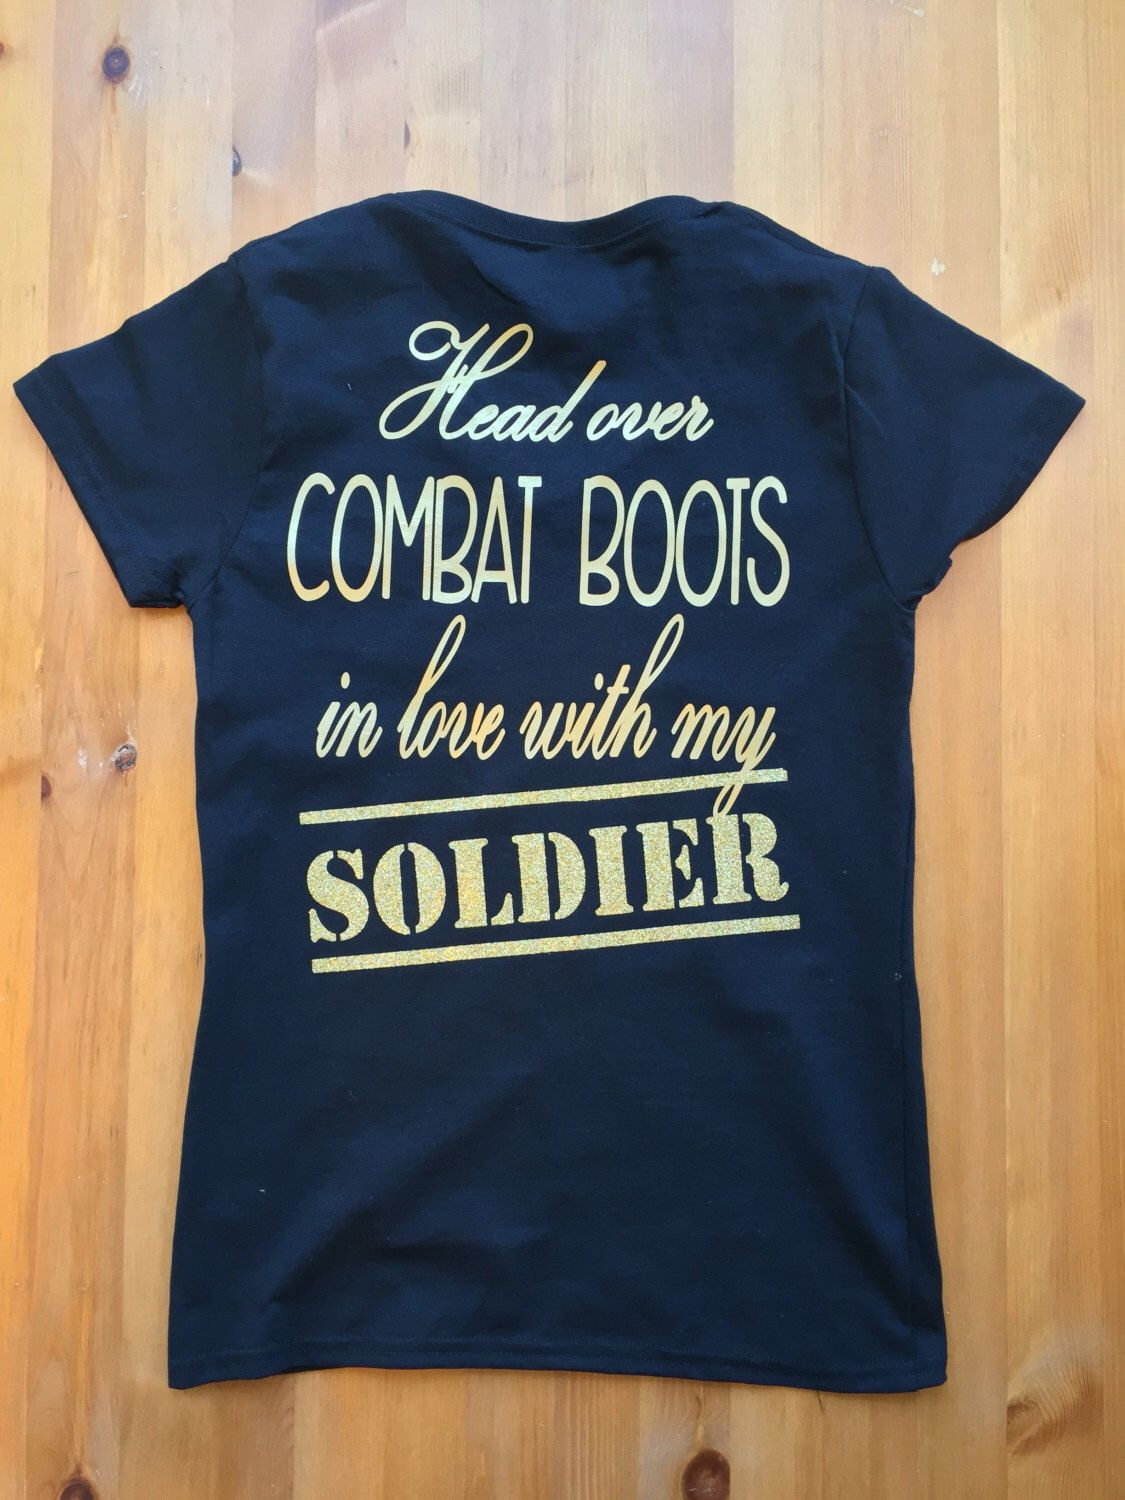 a5e70b9d Head over combat boots These shirts can be customized to represent your  branch of the military.